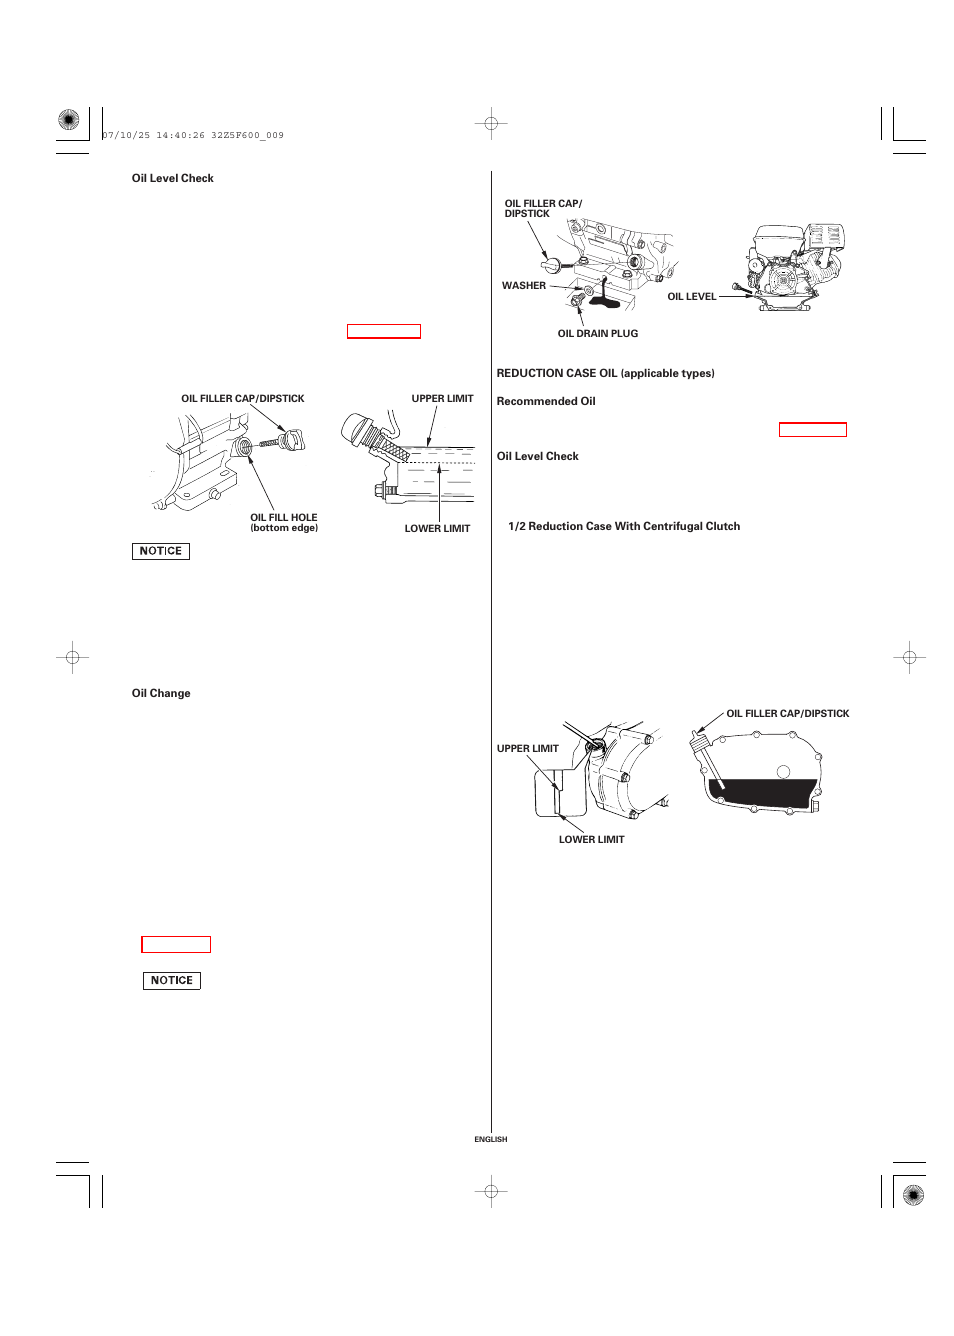 Oil level check, Oil change, Reduction case oil (applicable types) |  Recommended